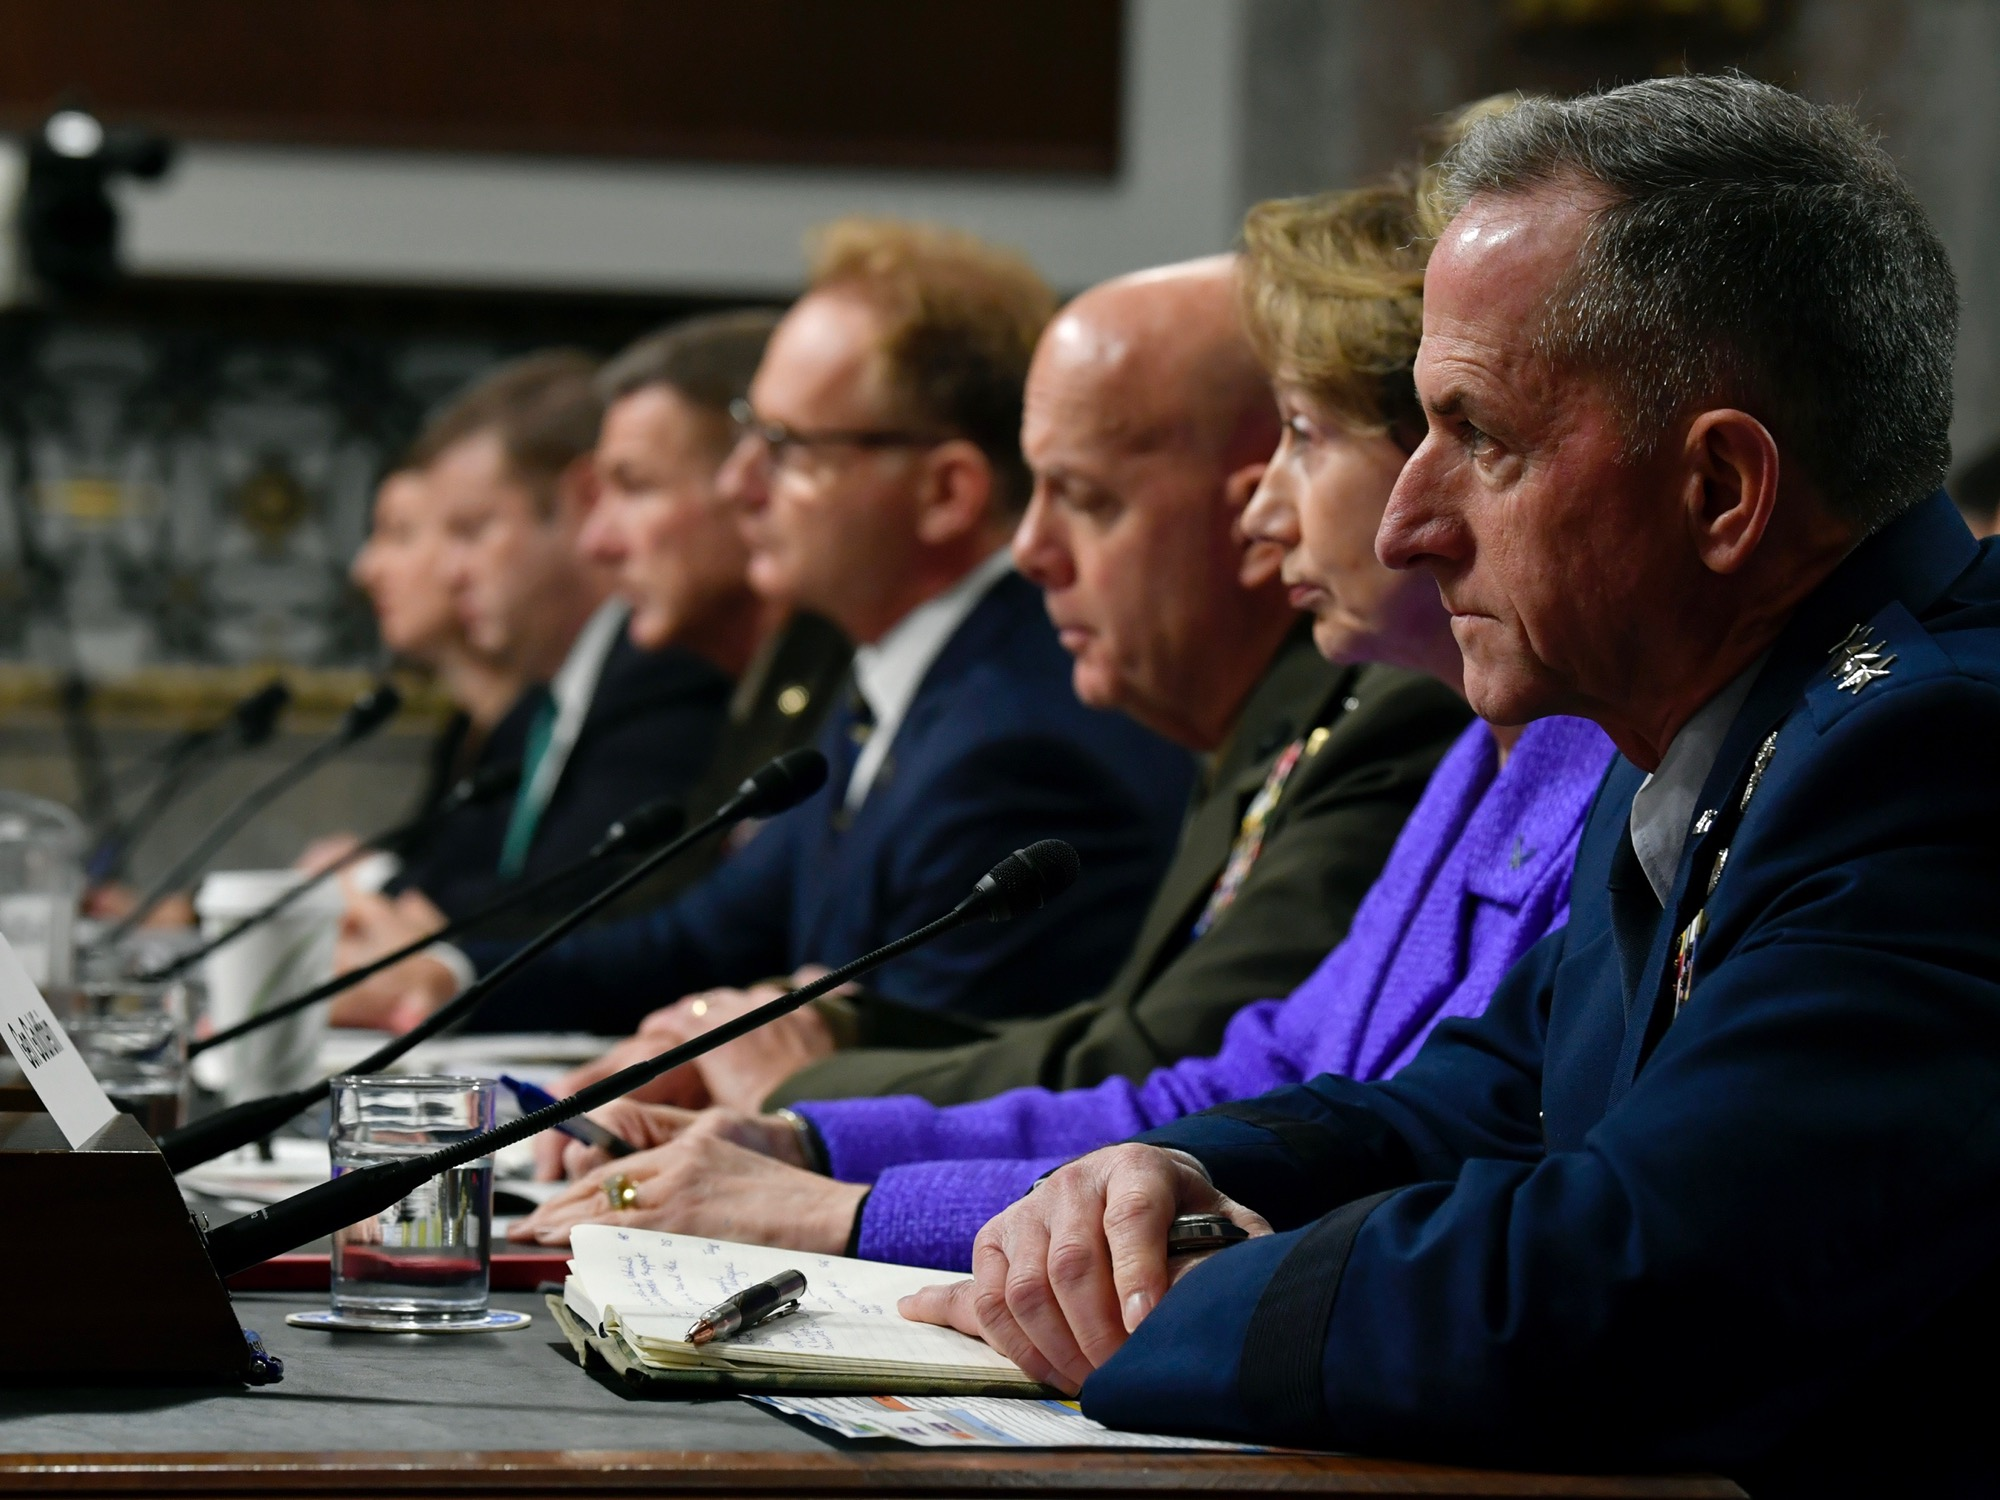 Senators grill military chiefs over private housing 'slumlords' on bases